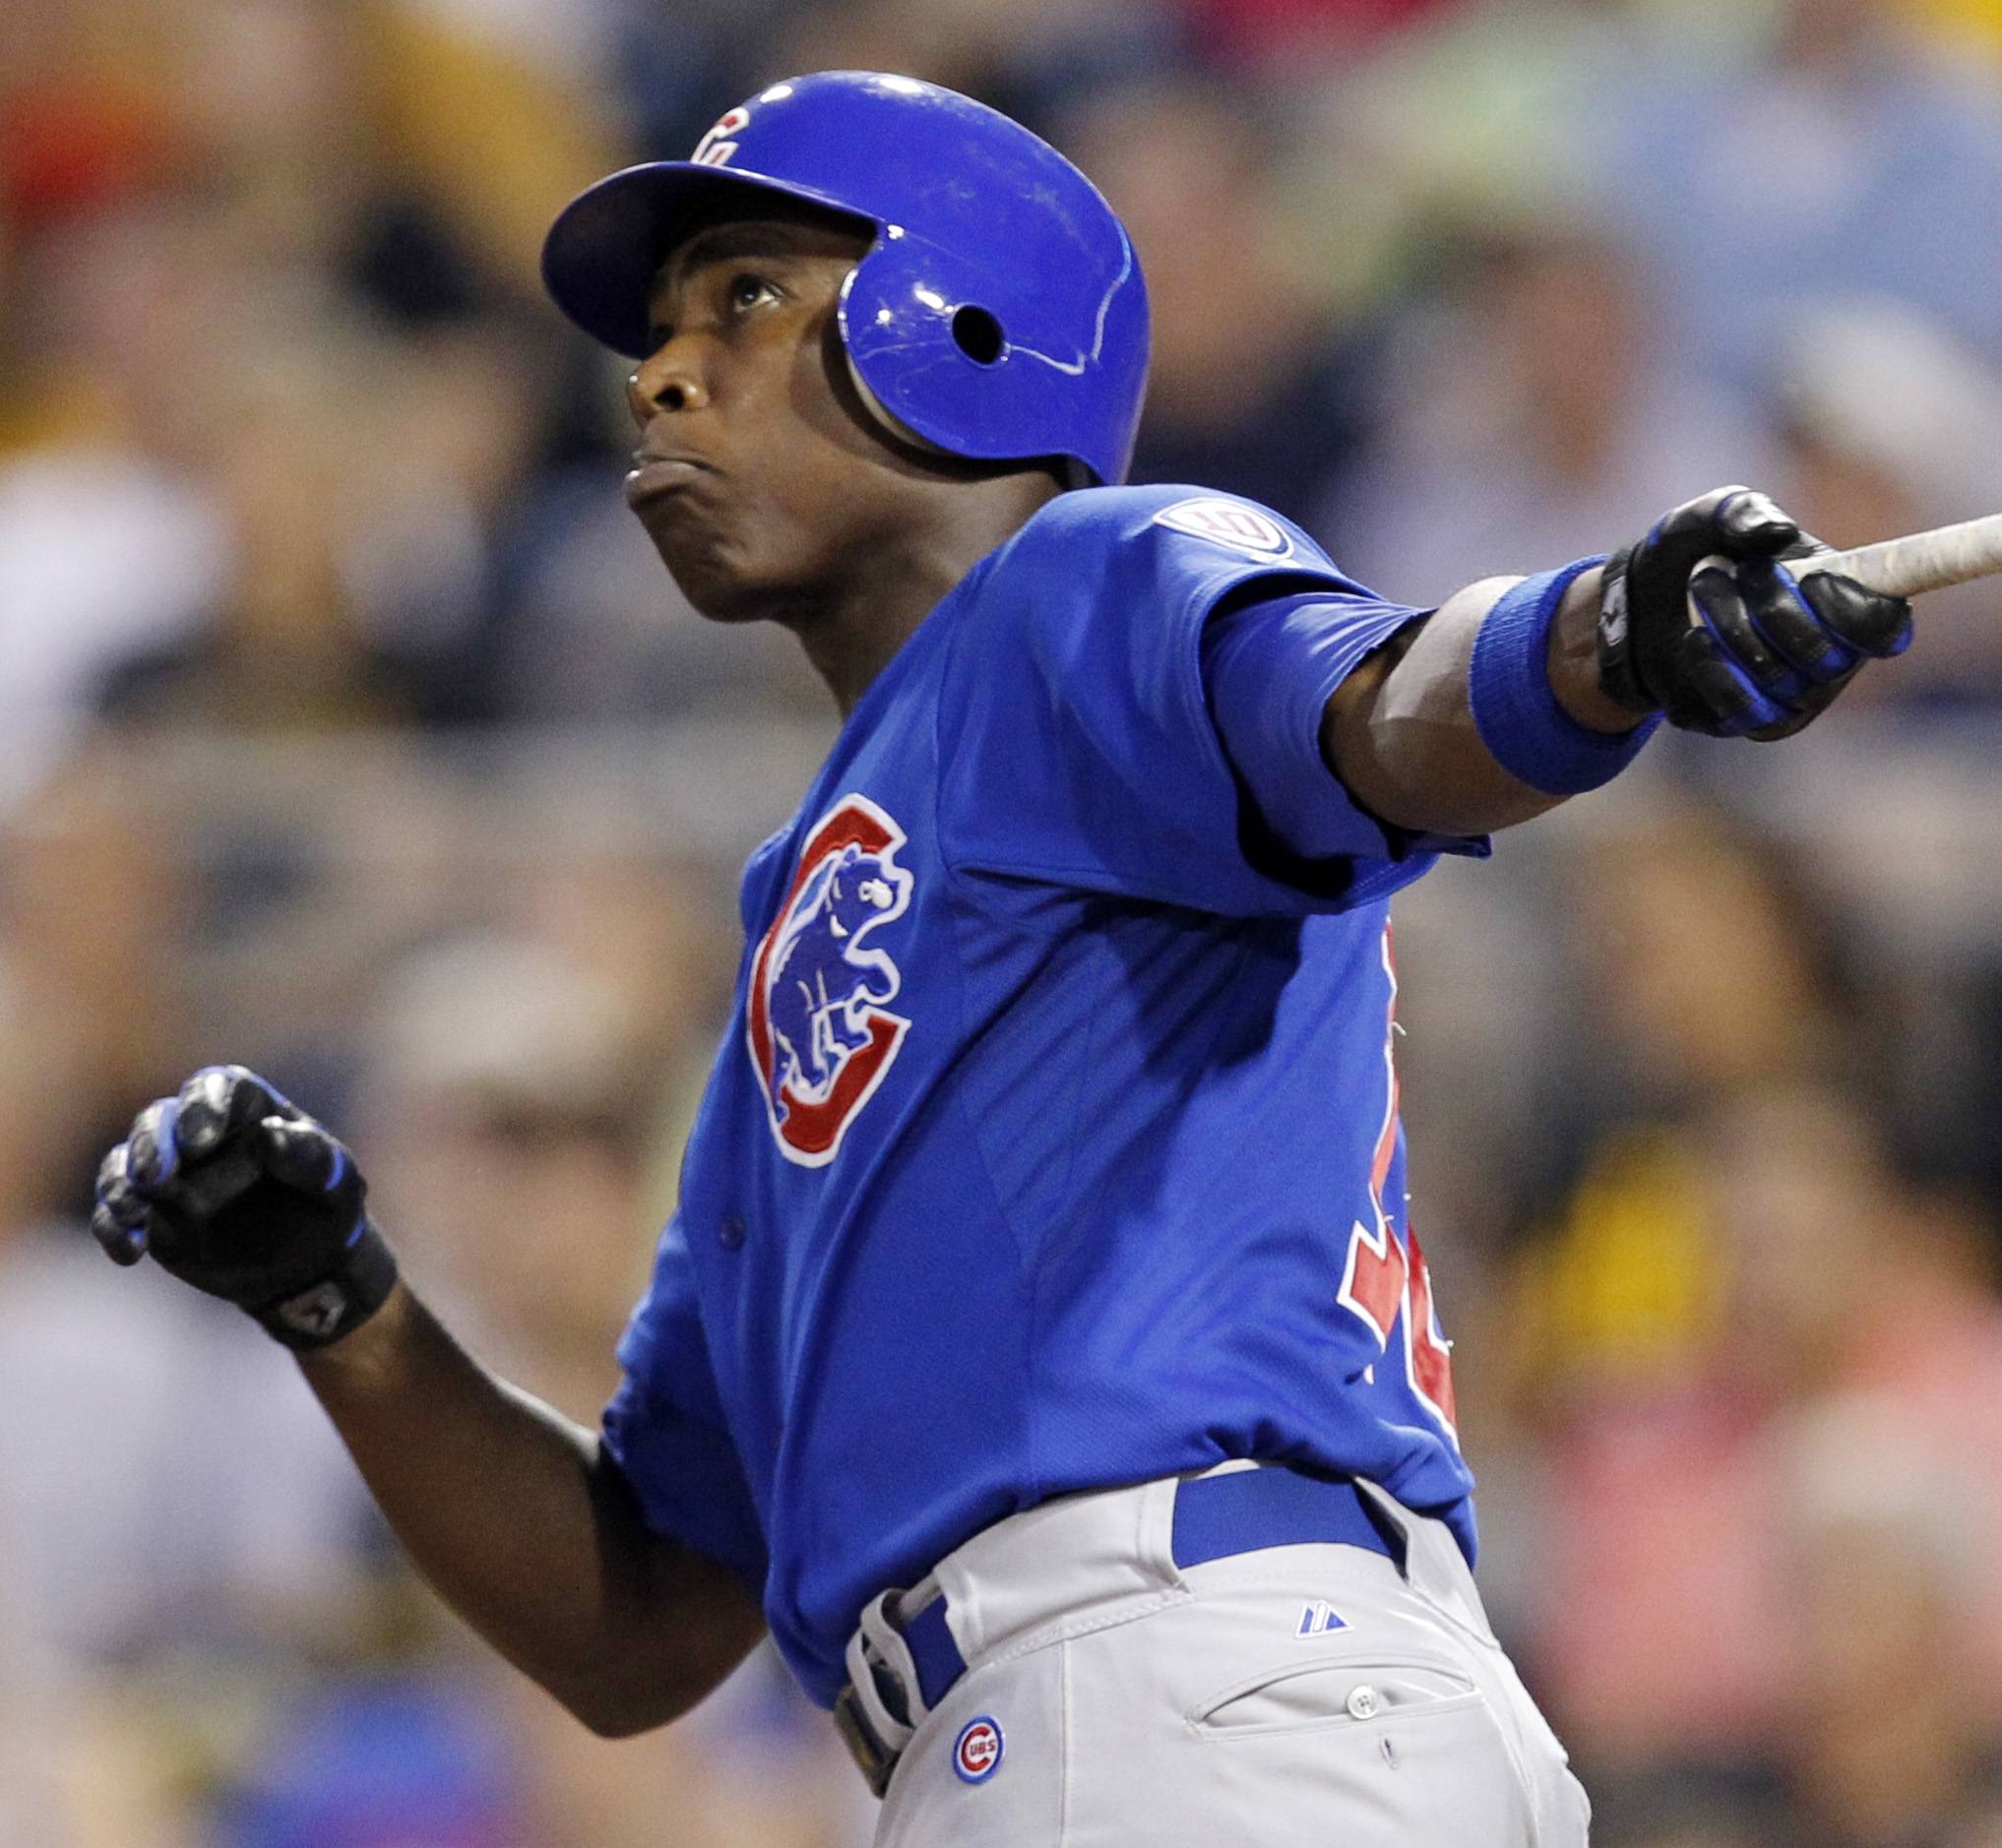 Alfonso Soriano hit two of the Cubs' season-high six home runs and the Cubs had a season-best 23 hits in an 11-6 victory over the fading Pittsburgh Pirates on Tuesday night.